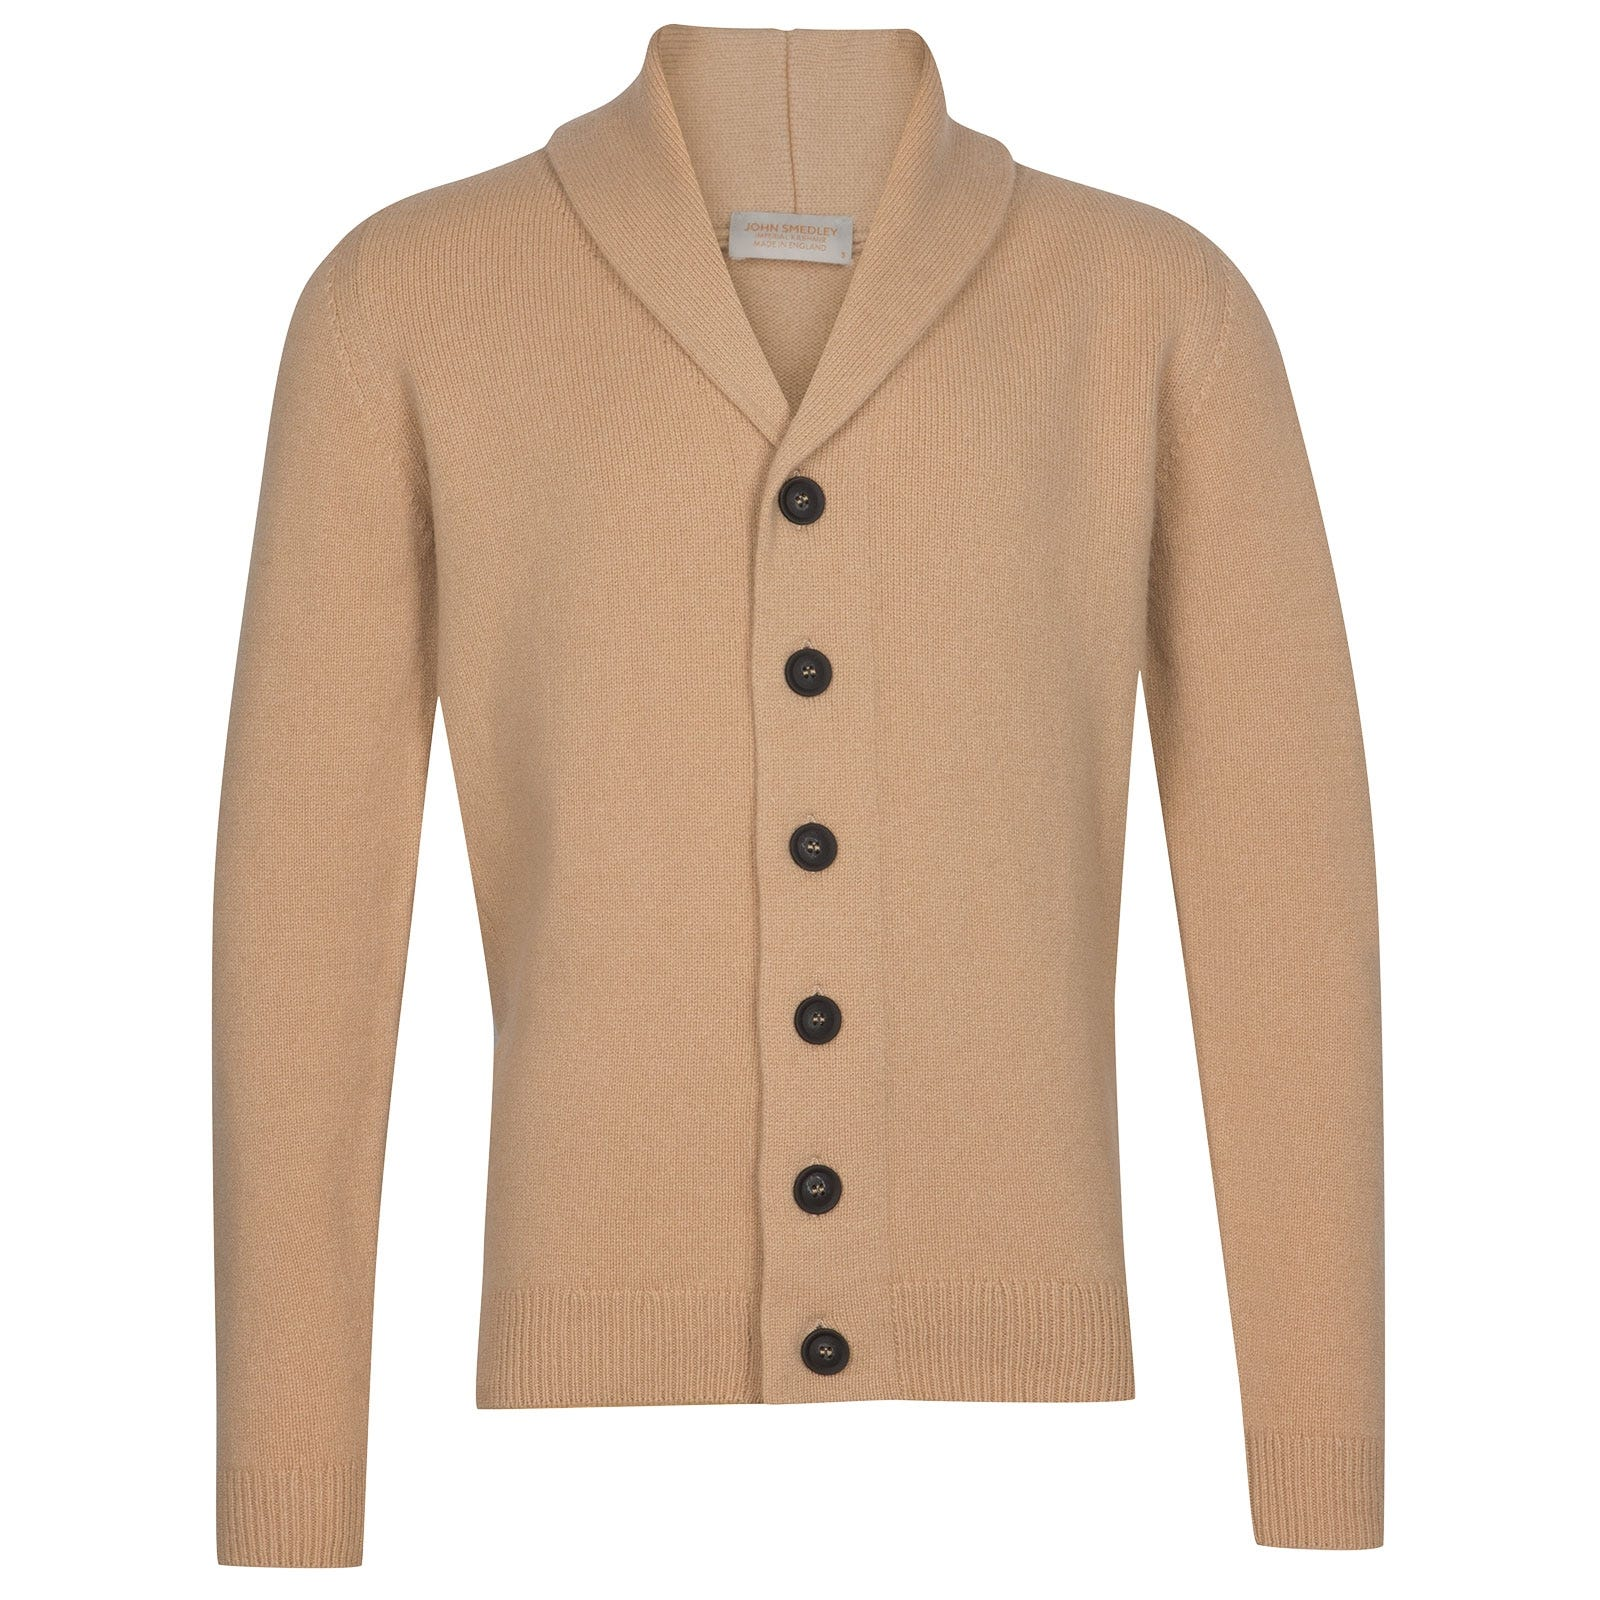 John Smedley patterson Wool and Cashmere Jacket in Light Camel-M